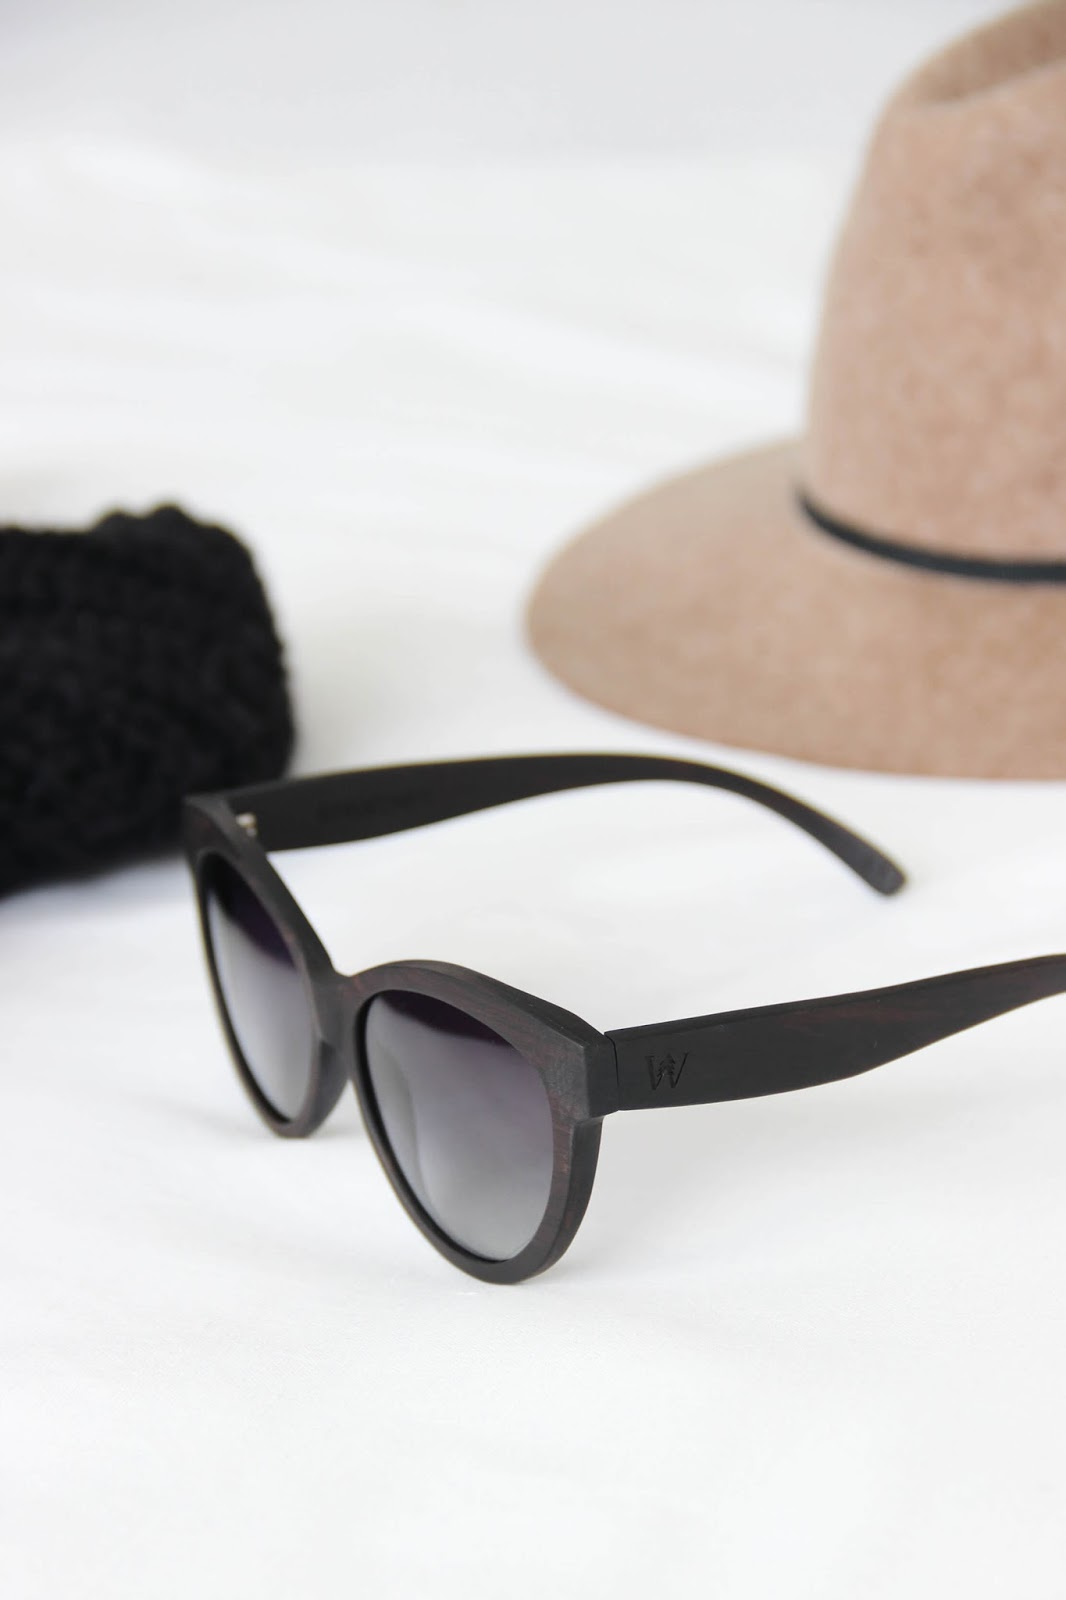 WOODZE SUNGLASSES AUTUMN LOOK